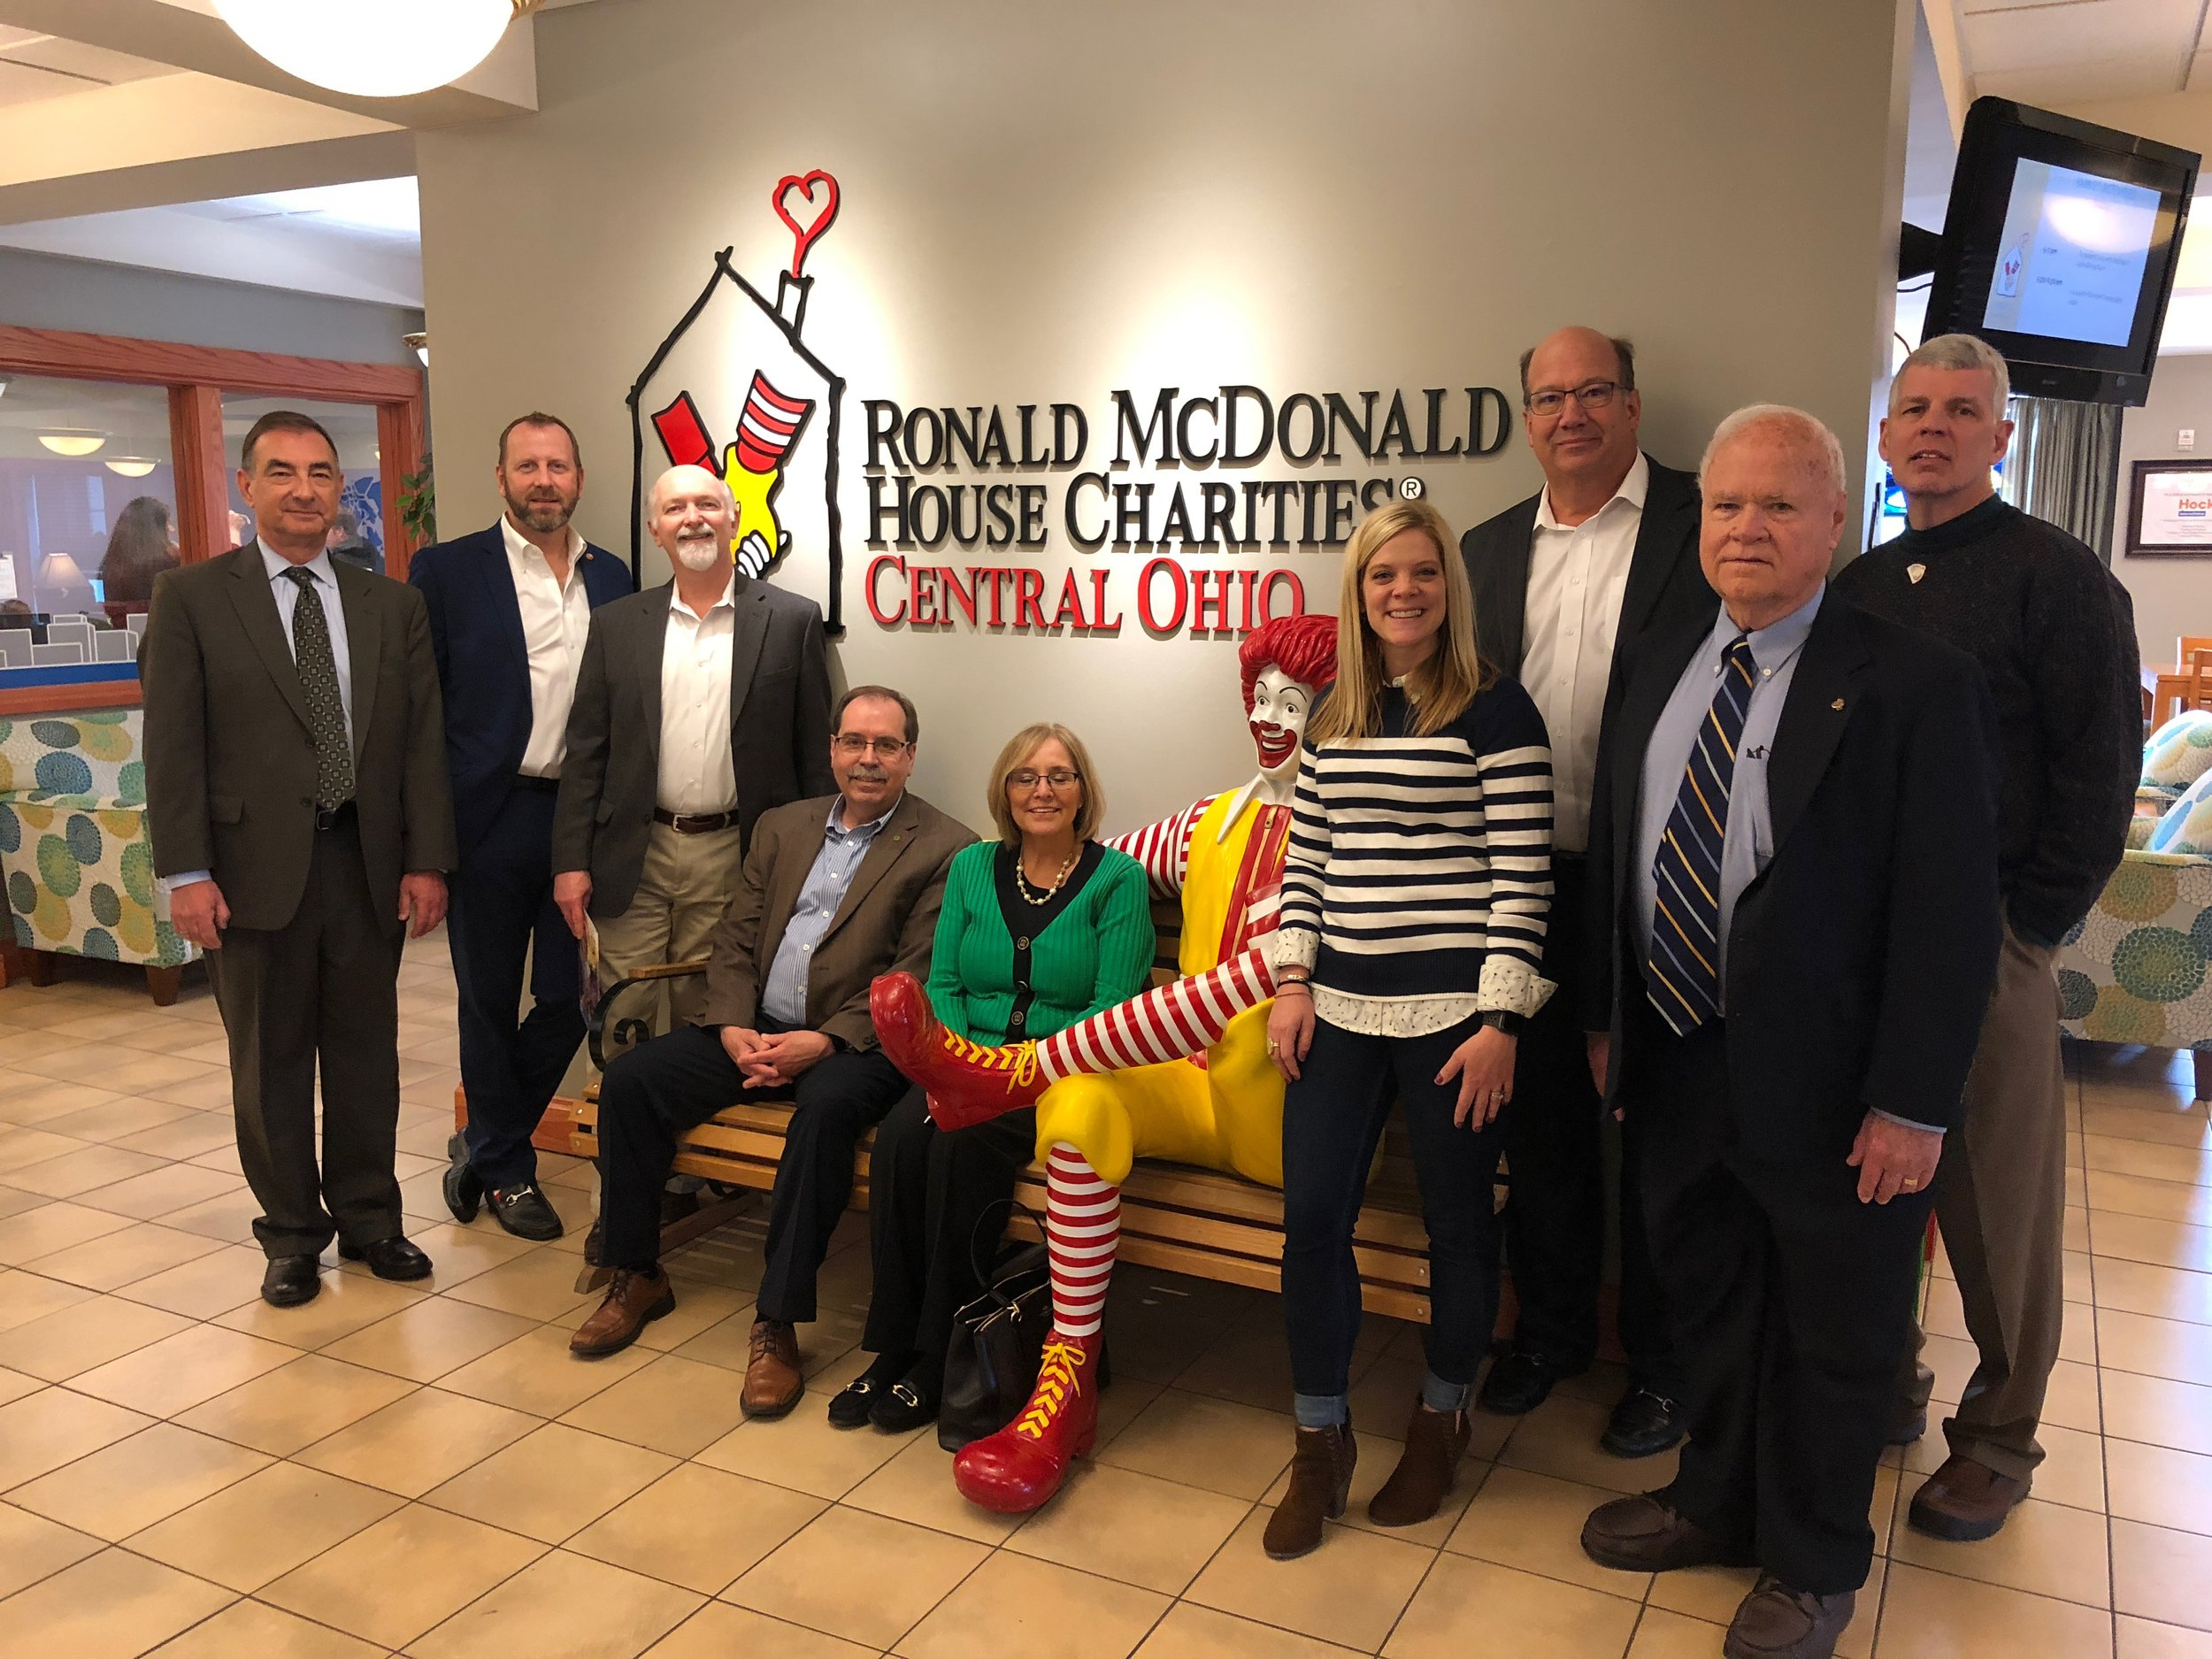 The Columbus Rotary Vocational Lunch at The Ronald McDonald House